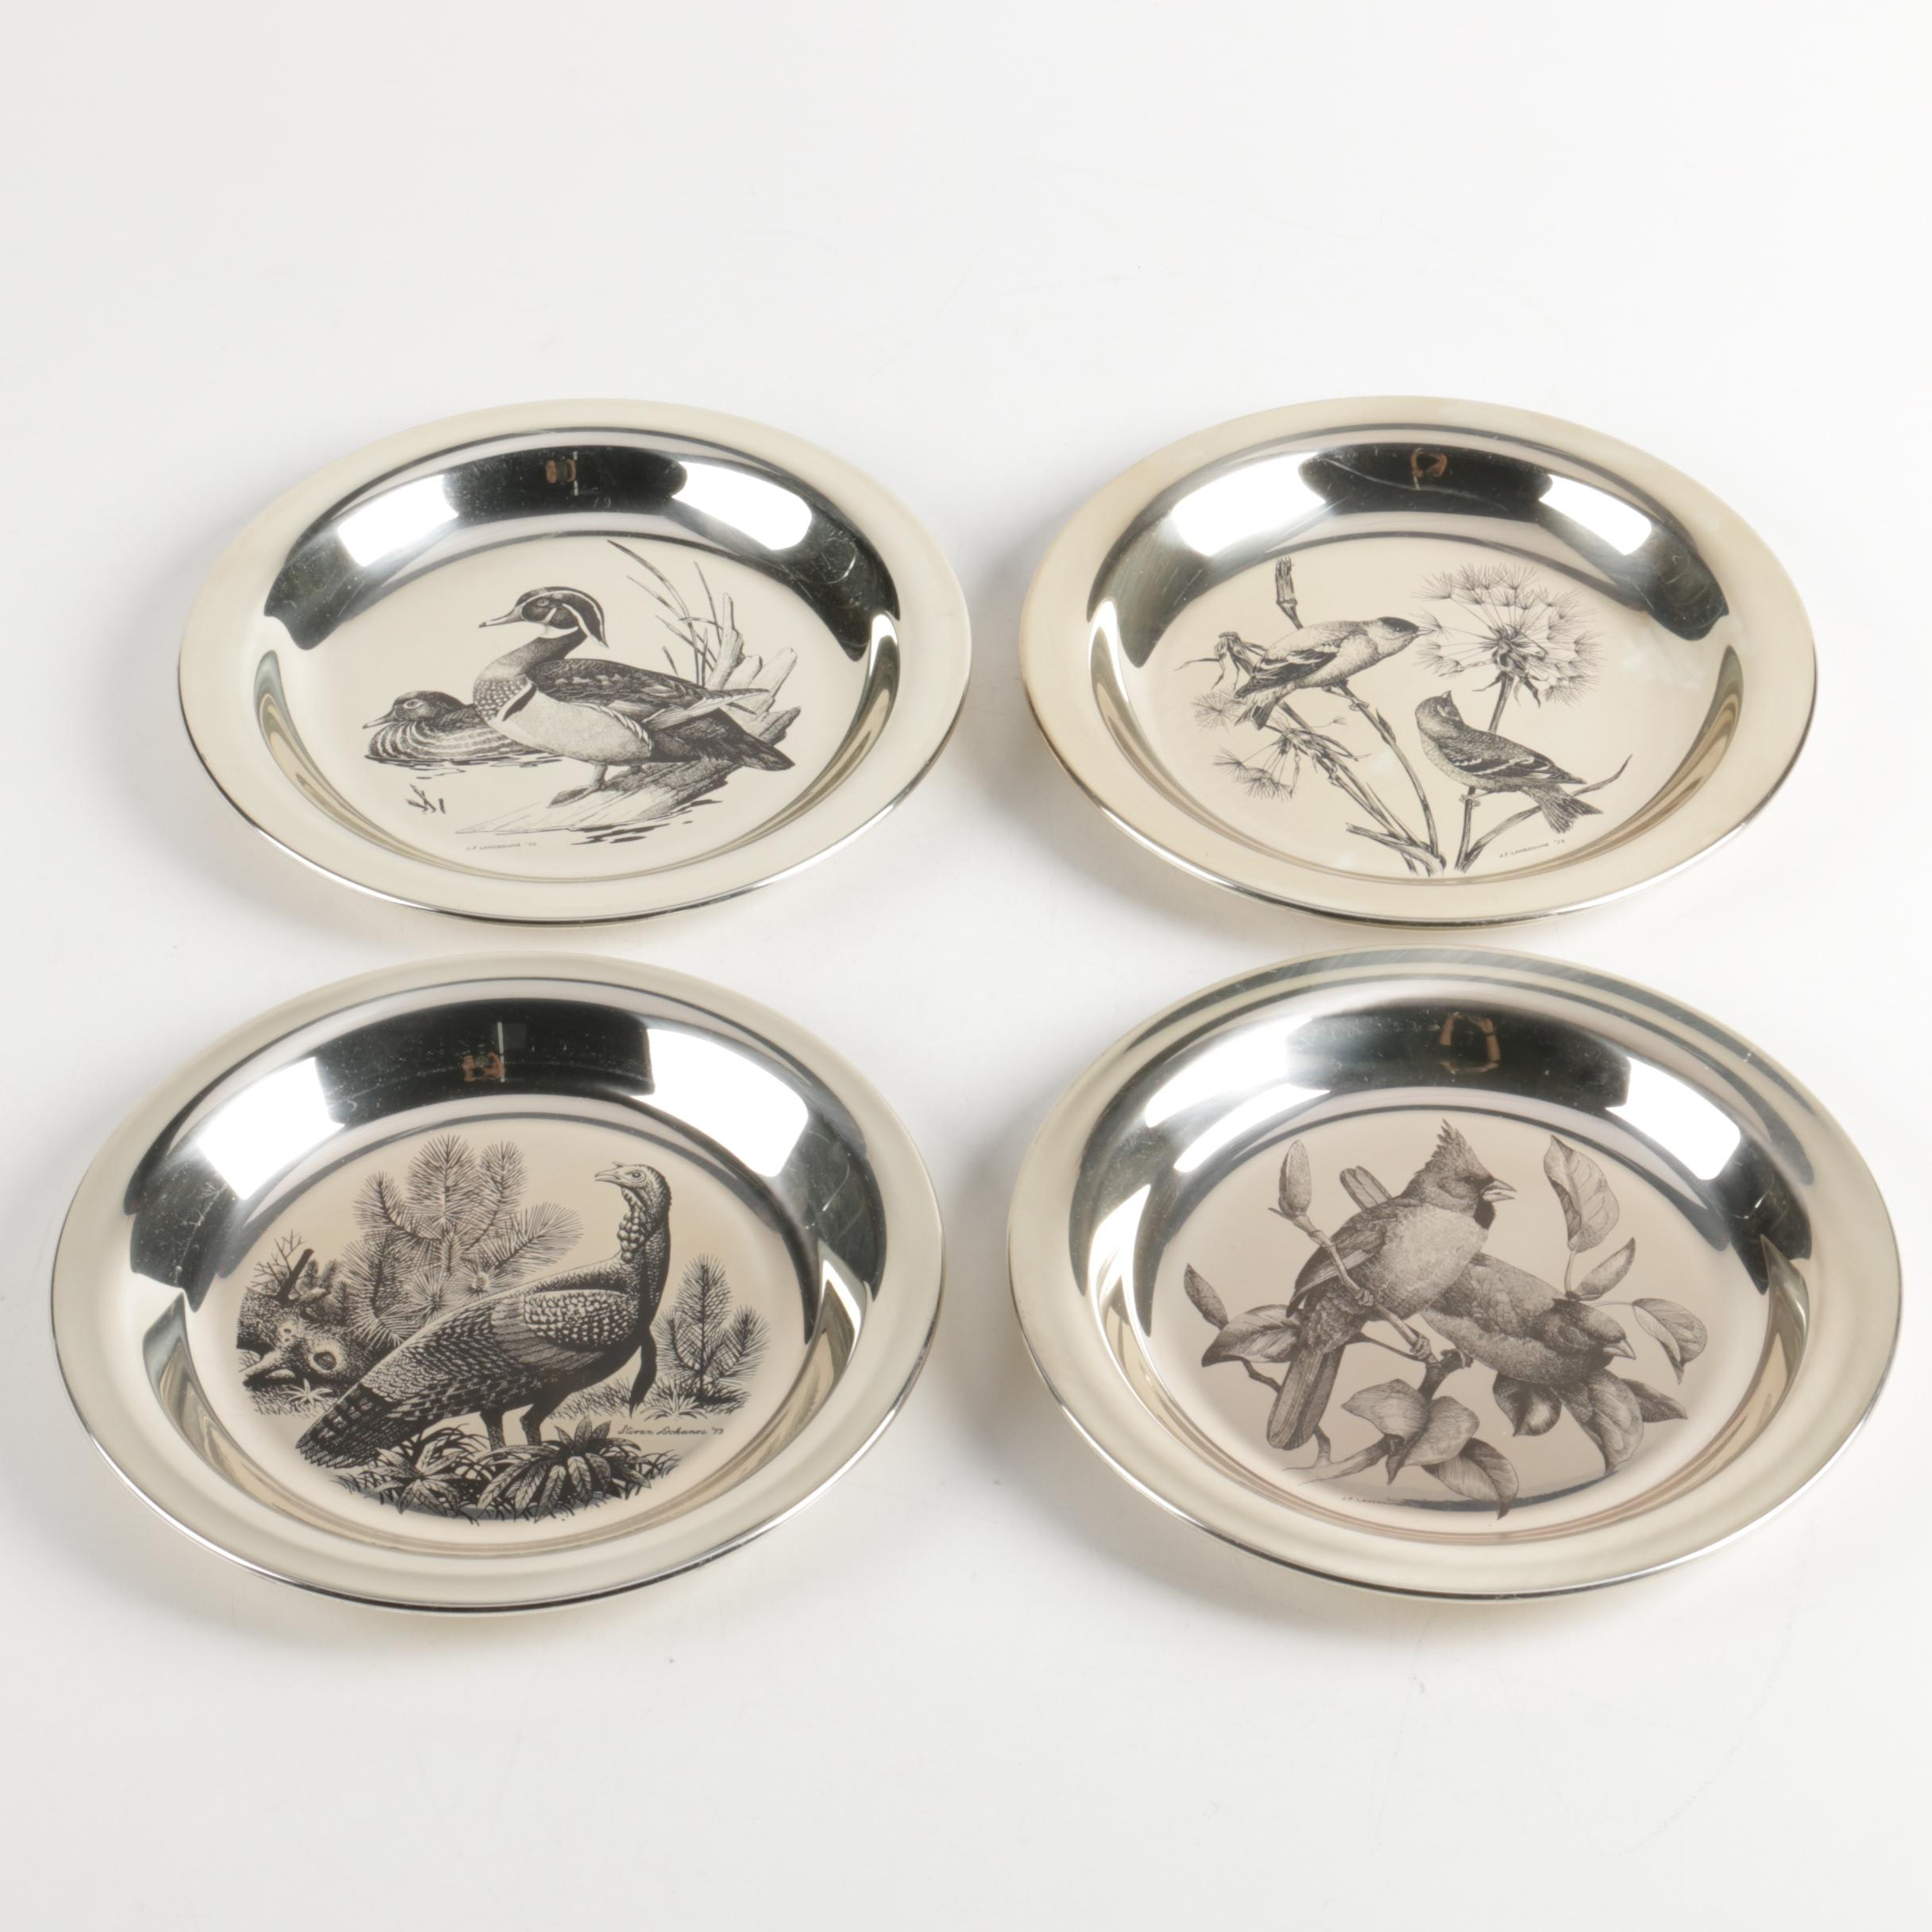 The National Audubon Society and Franklin Mint Sterling Silver Plates